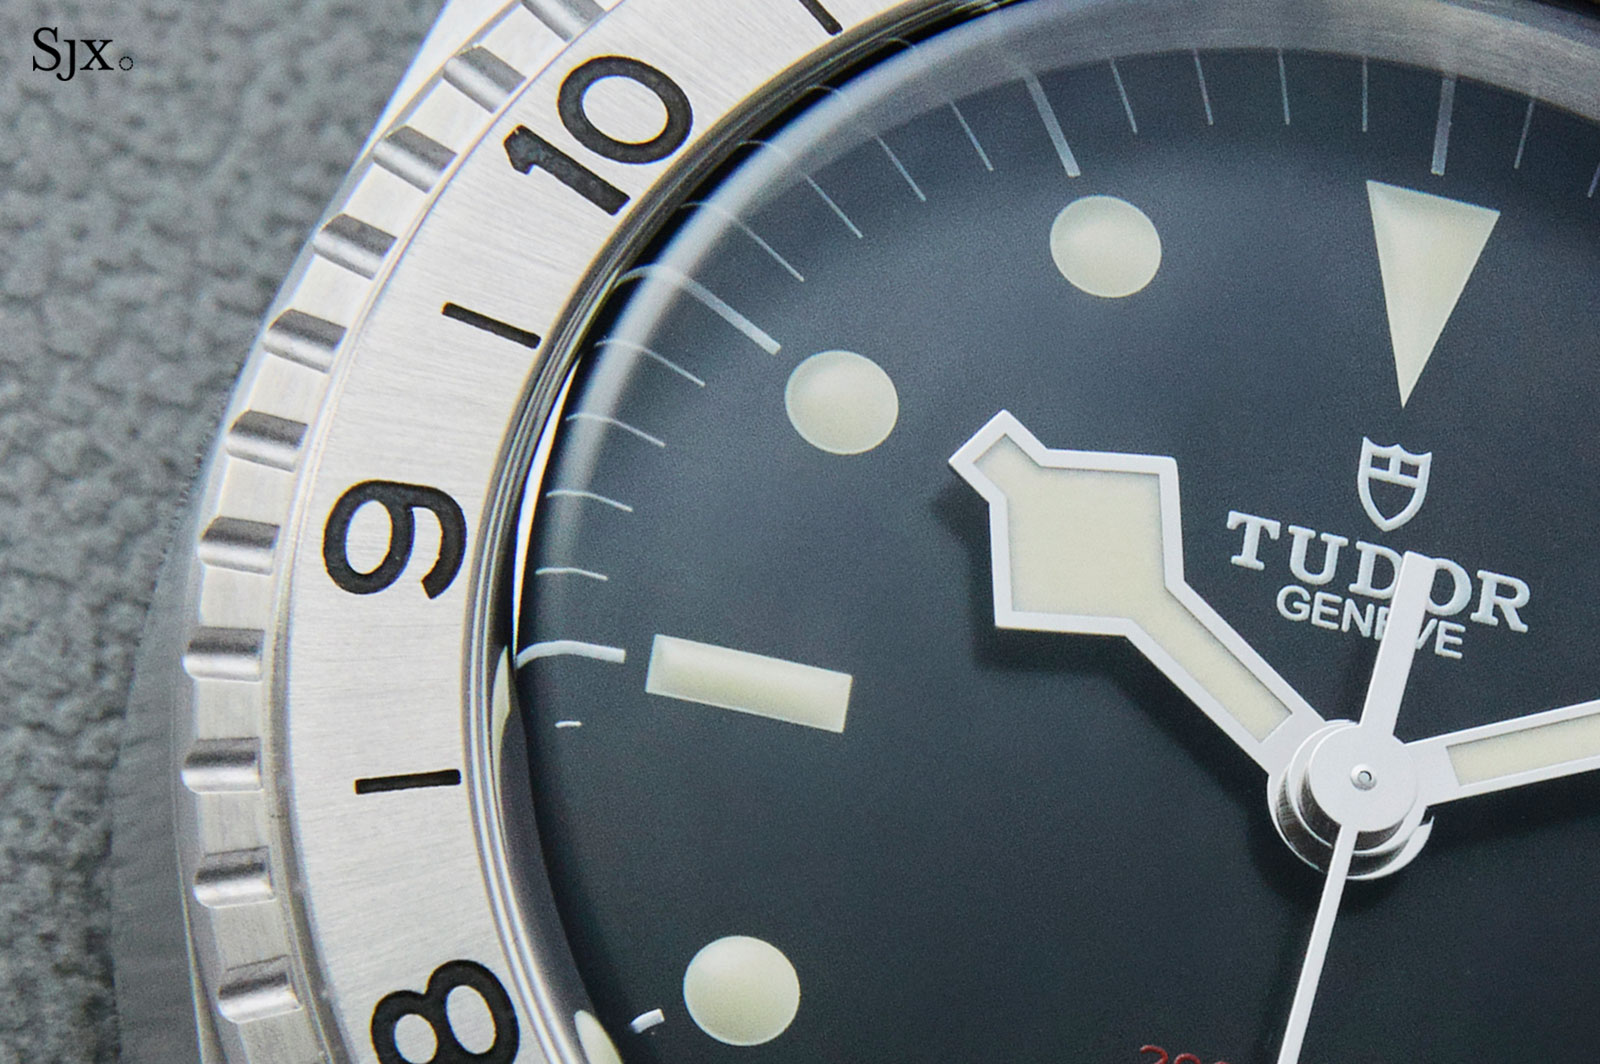 Tudor Black Bay P01 watch 3